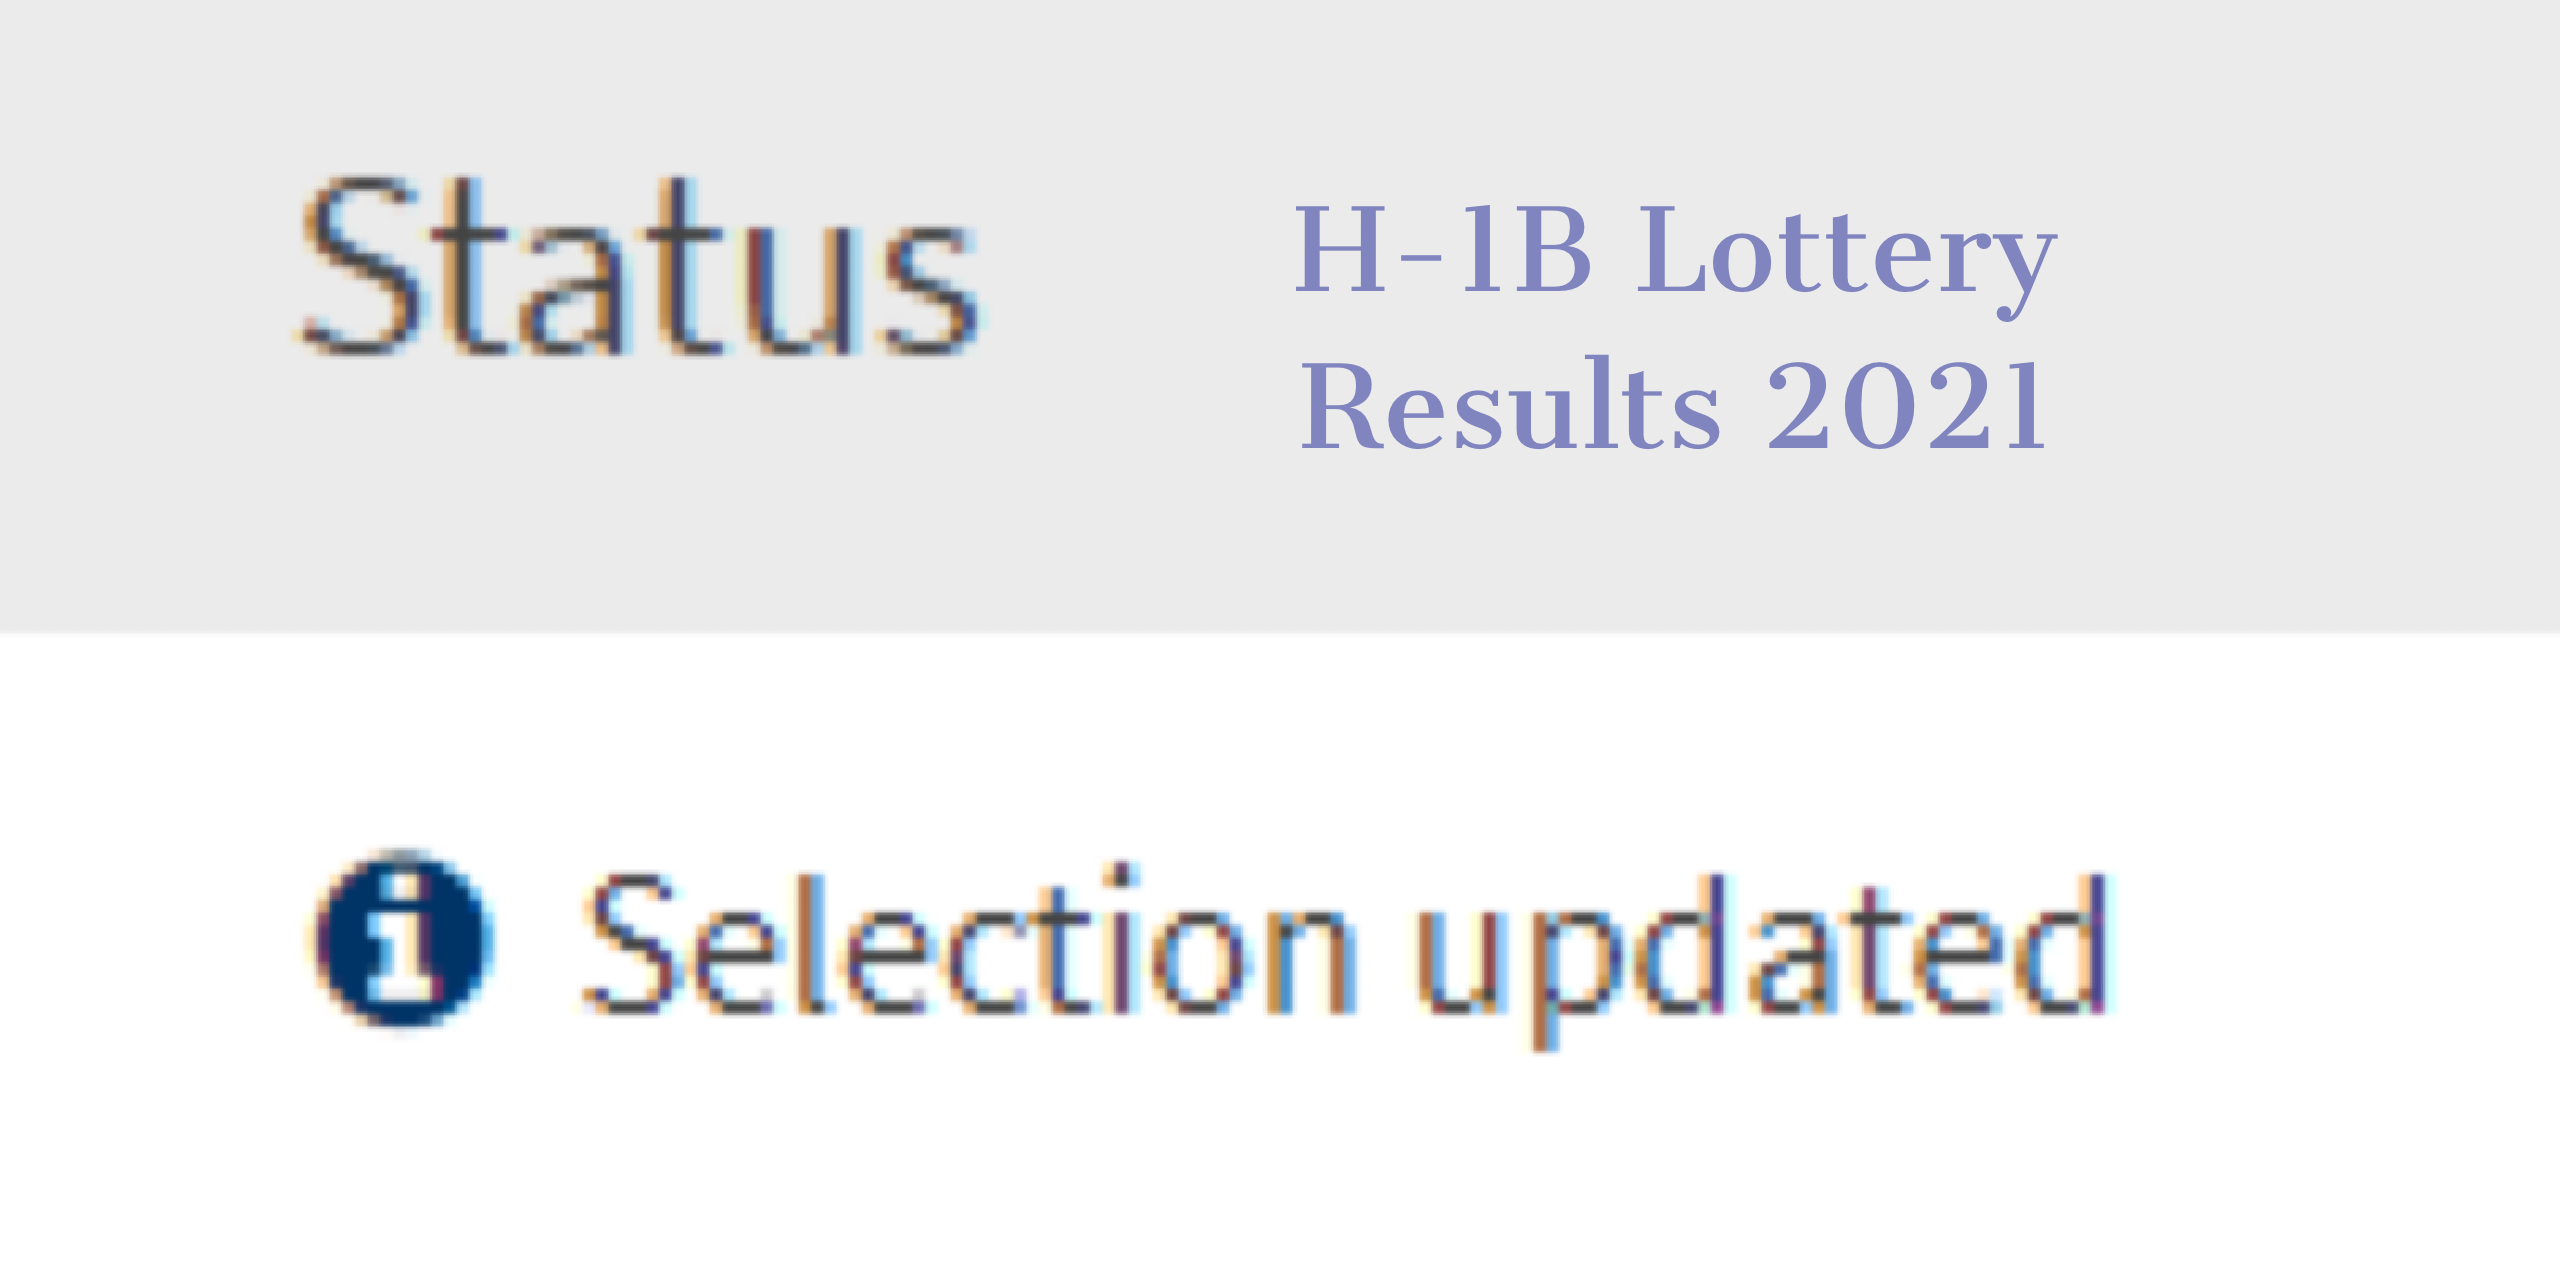 H-1B Lottery Results 2021